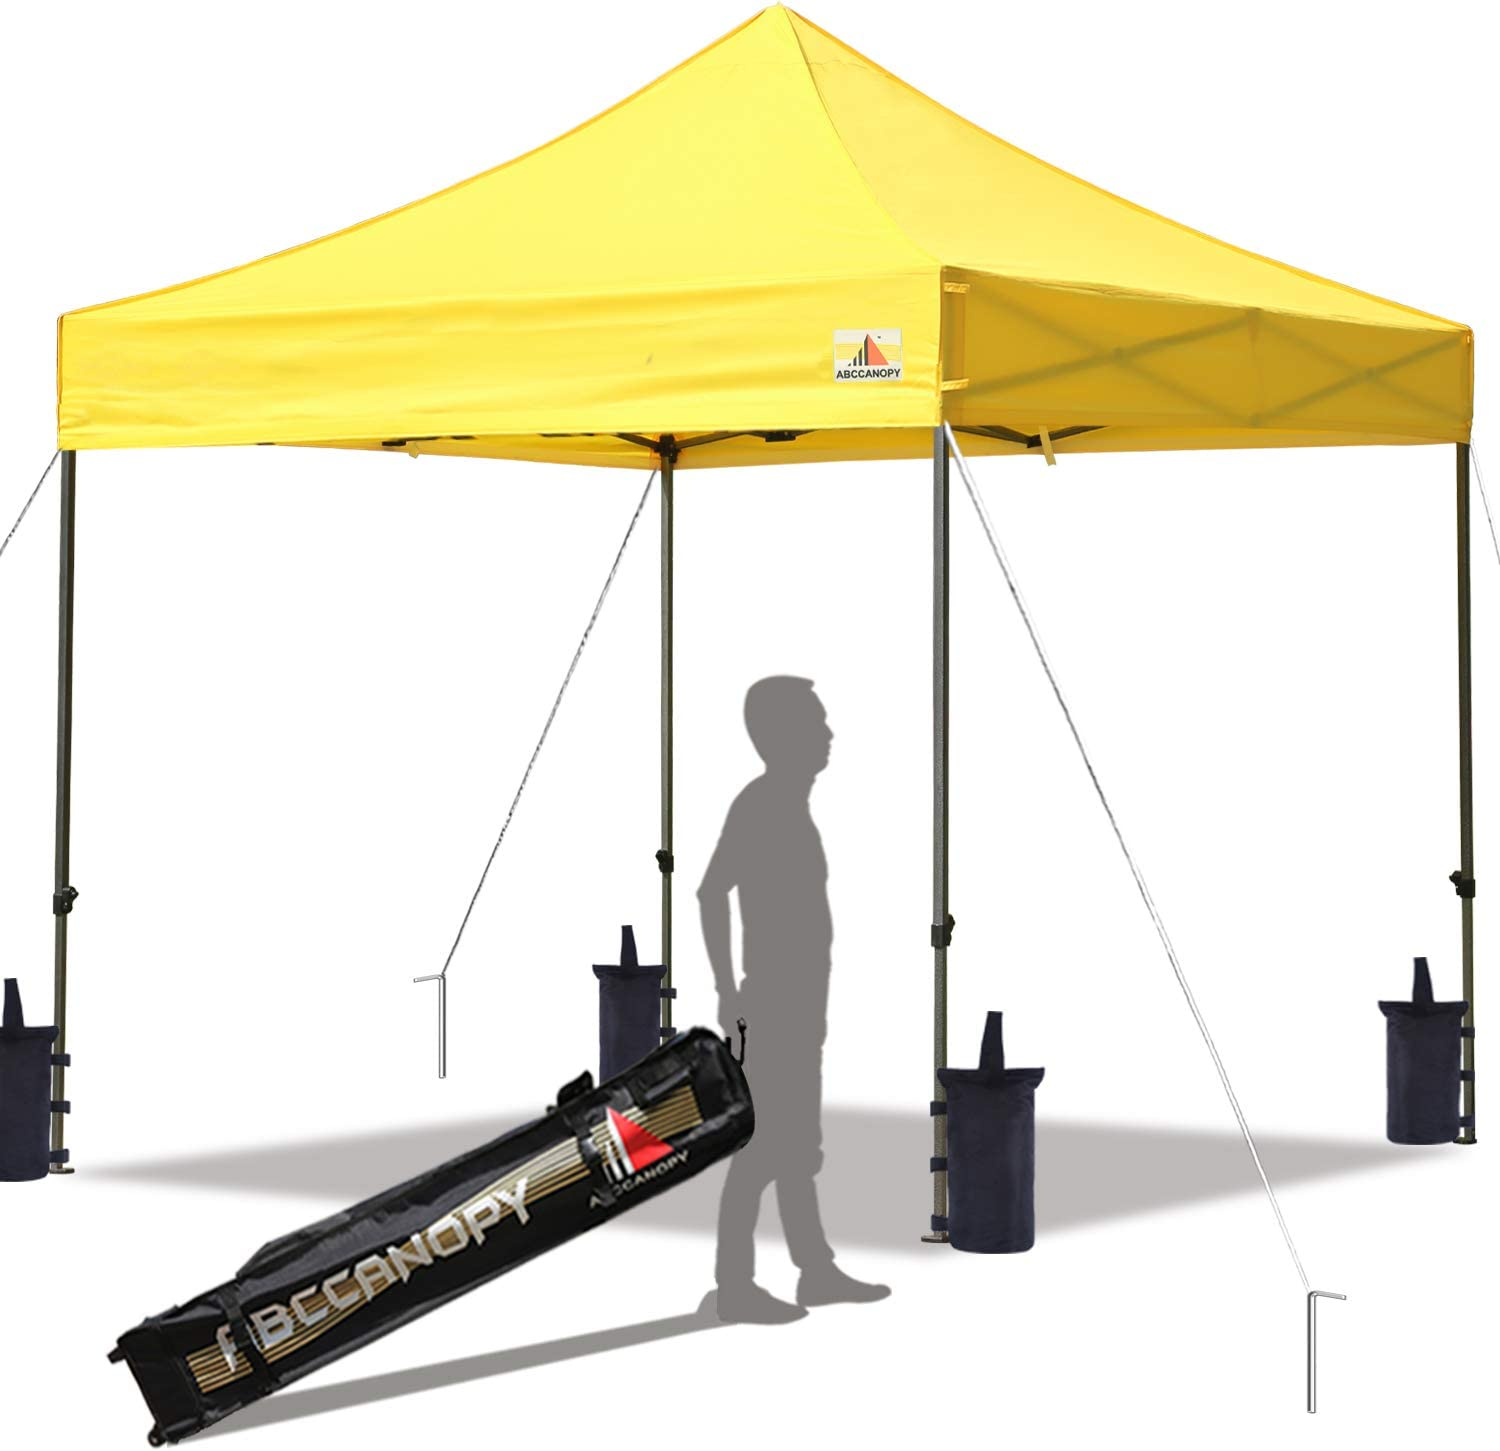 ABCCANOPY Pop up Canopy Tent Commercial Instant Shelter with Wheeled Carry Bag, 10×10 FT Yellow